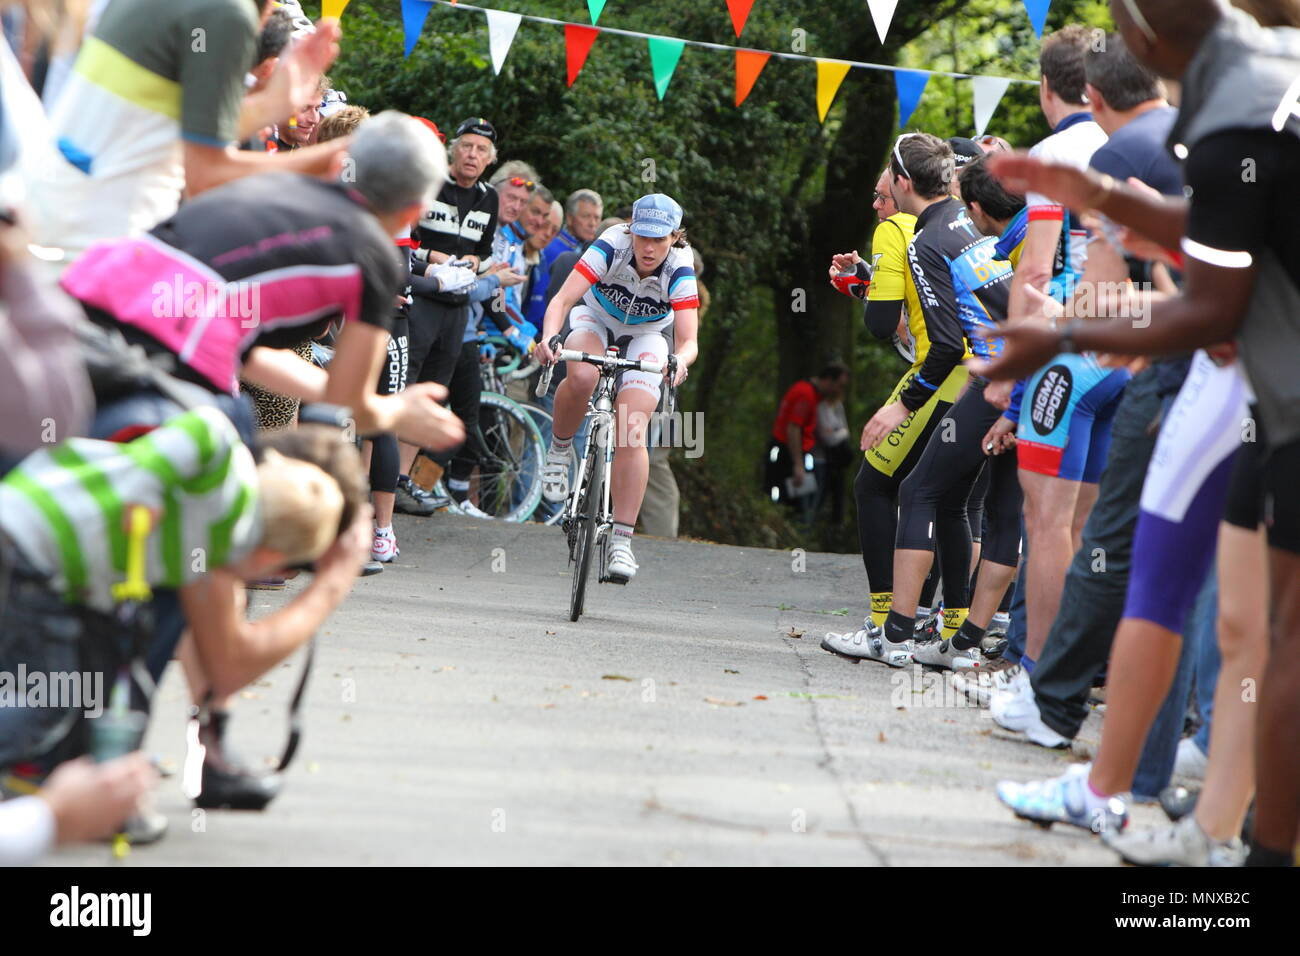 UK - Cycling - Bec Cycling Club 56th Annual Open Hill Climb - Stock Image